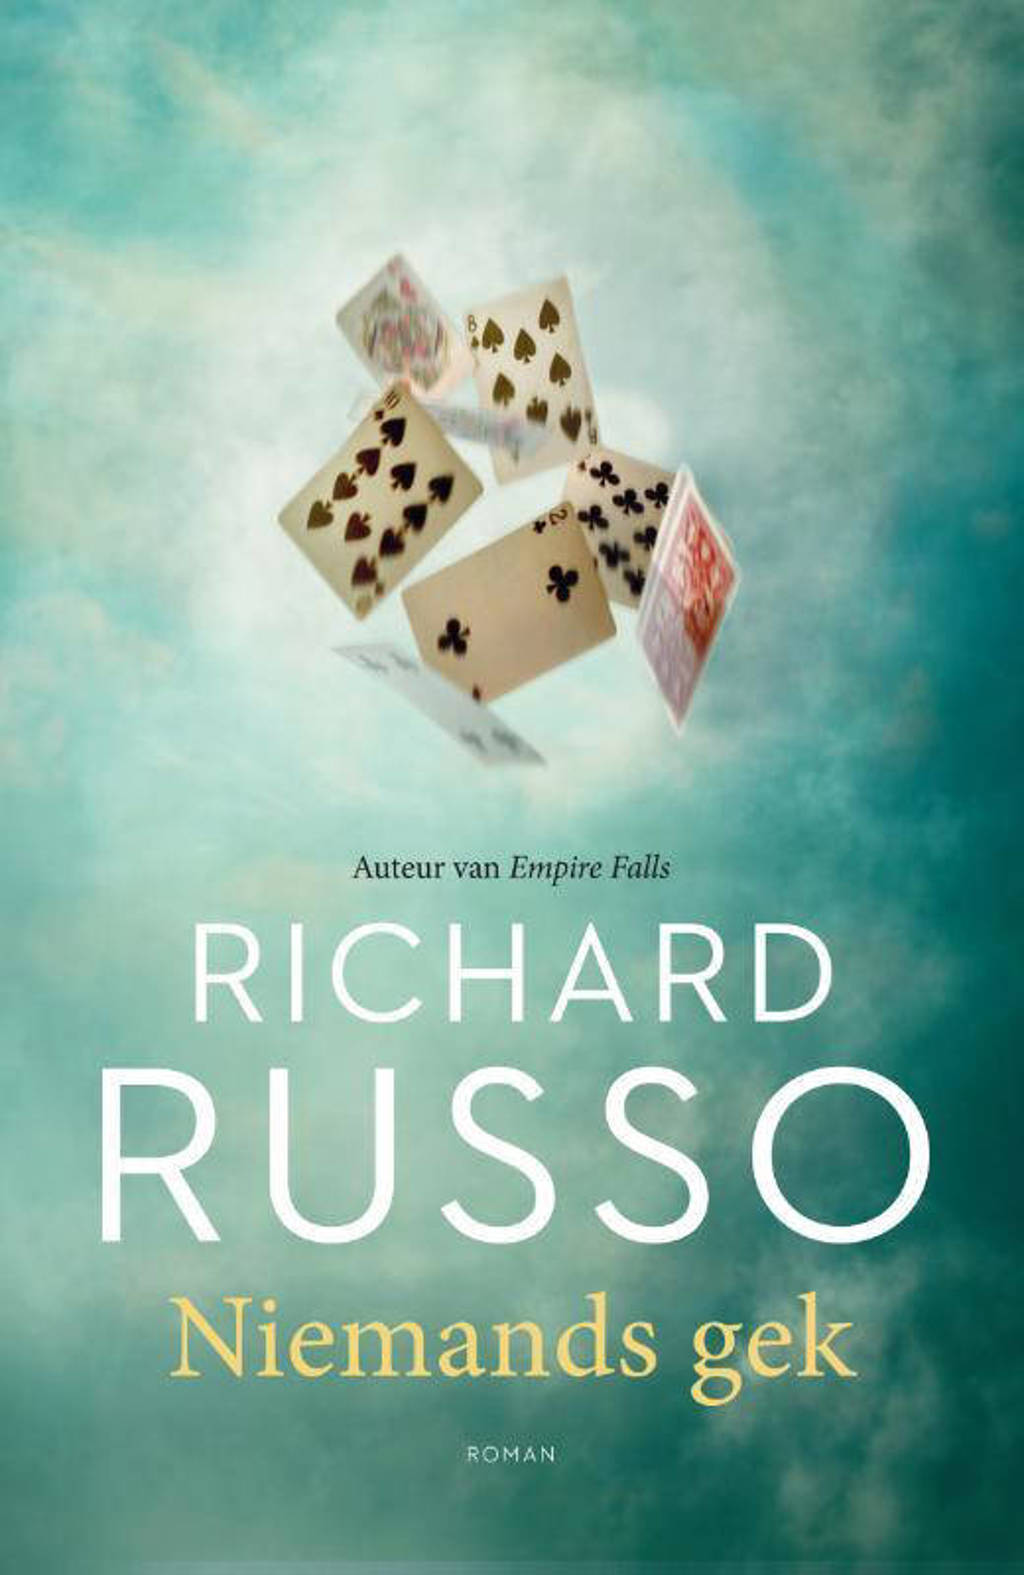 Niemands gek - Richard Russo